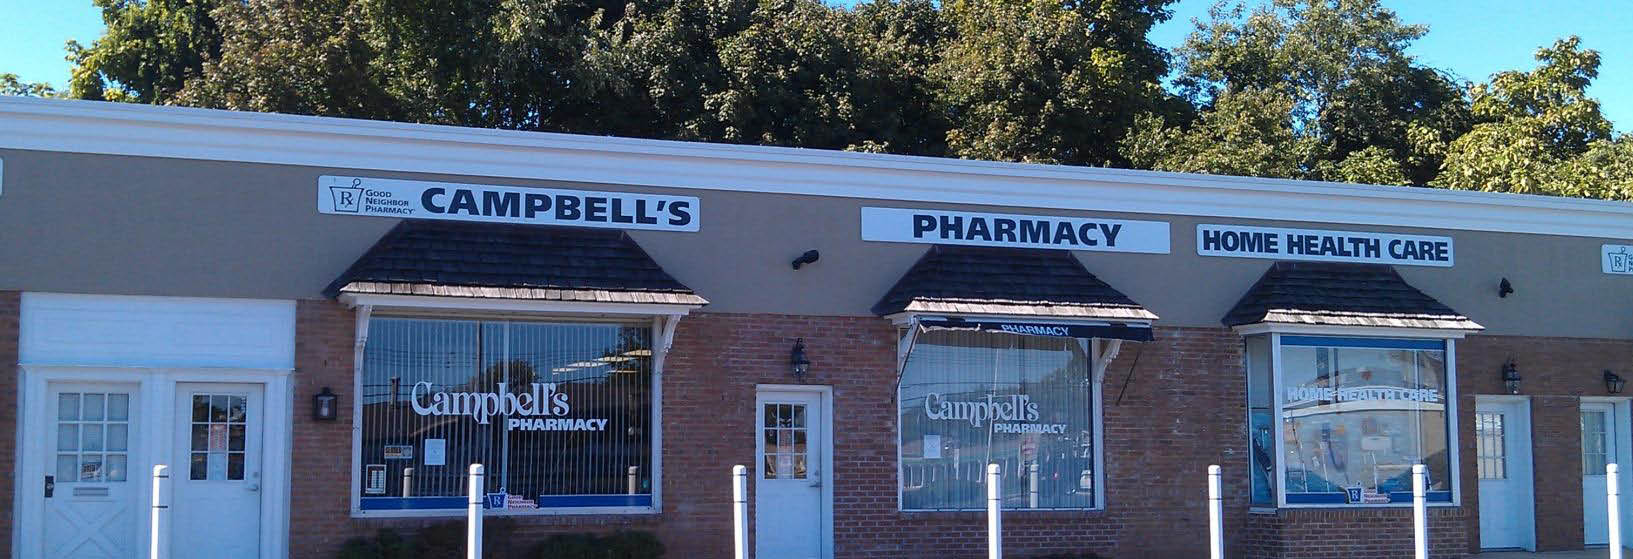 Campbells Pharmacy Store Front.